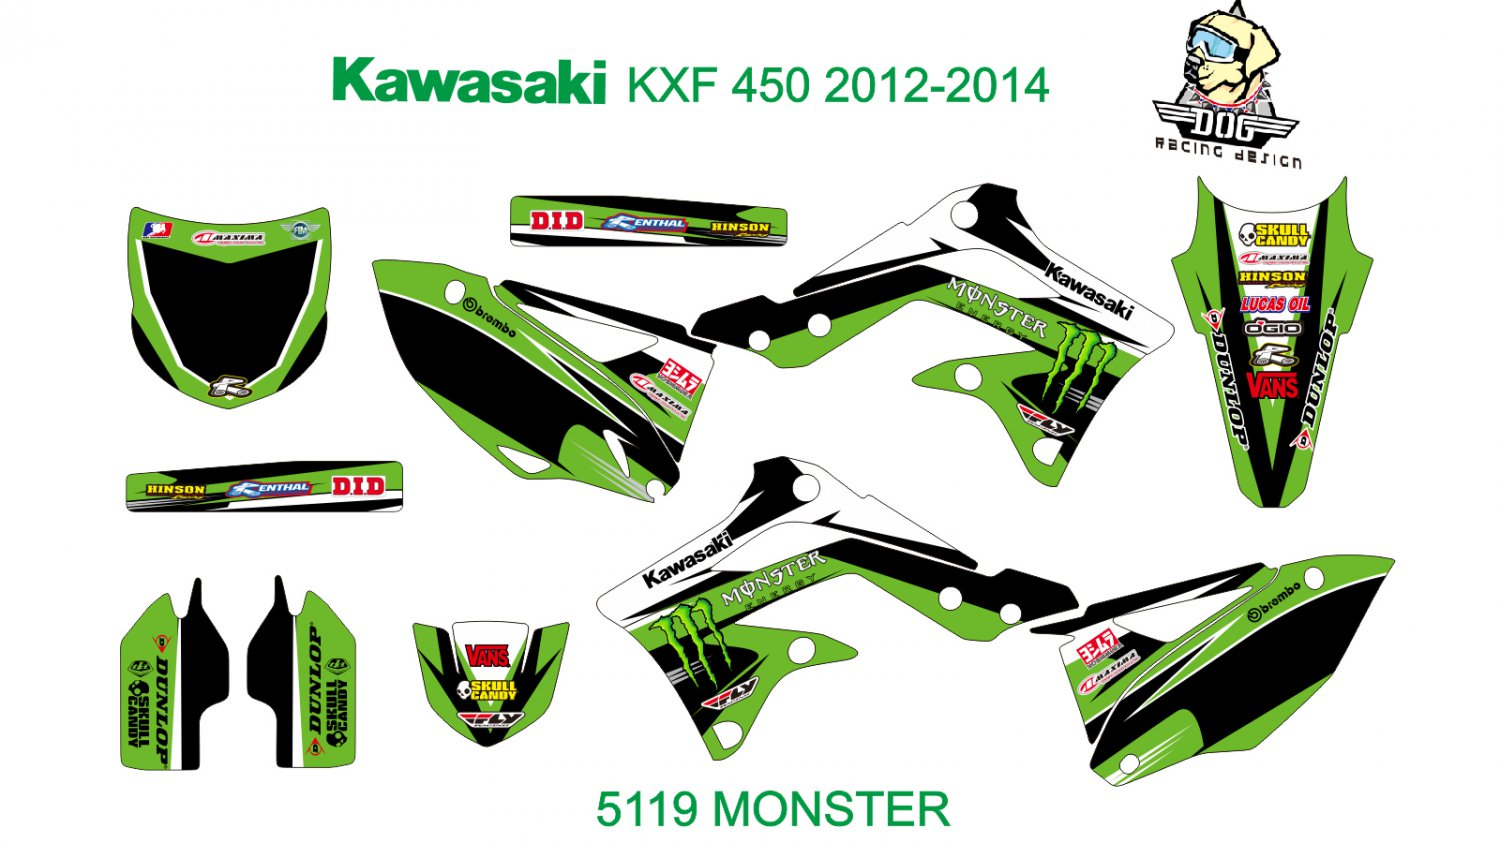 KAWASAKI KXF 450 2012-2014 GRAPHIC DECAL KIT CODE.5119